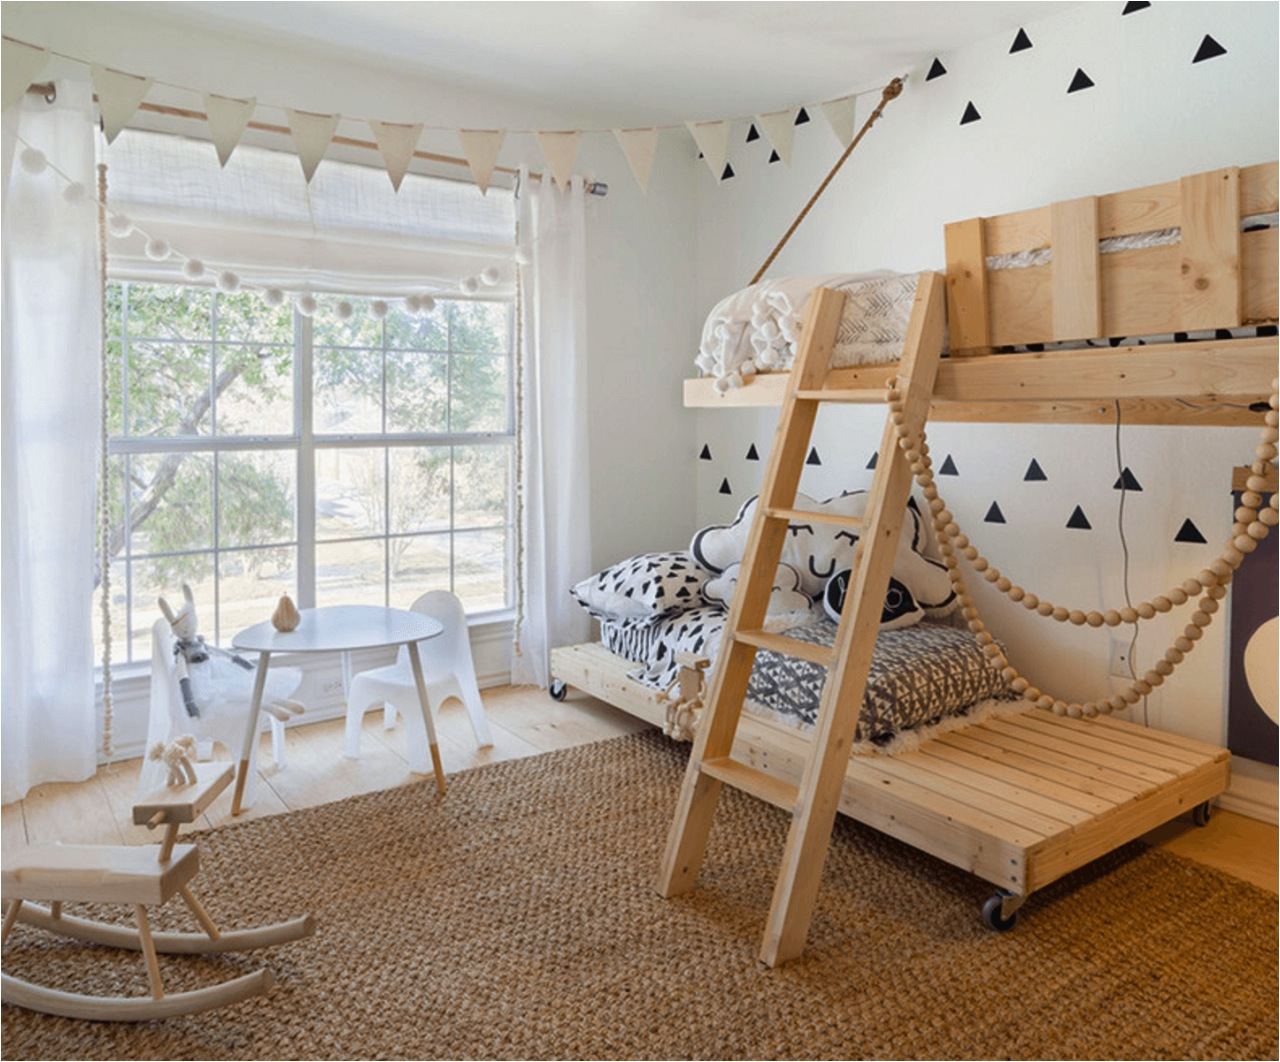 This Is Such A Great Idea Custom Made Beds Using Wooden Crates We Have To Admit That The Top Bed Would Make Us Bit Nervous As It Looks Likes Its